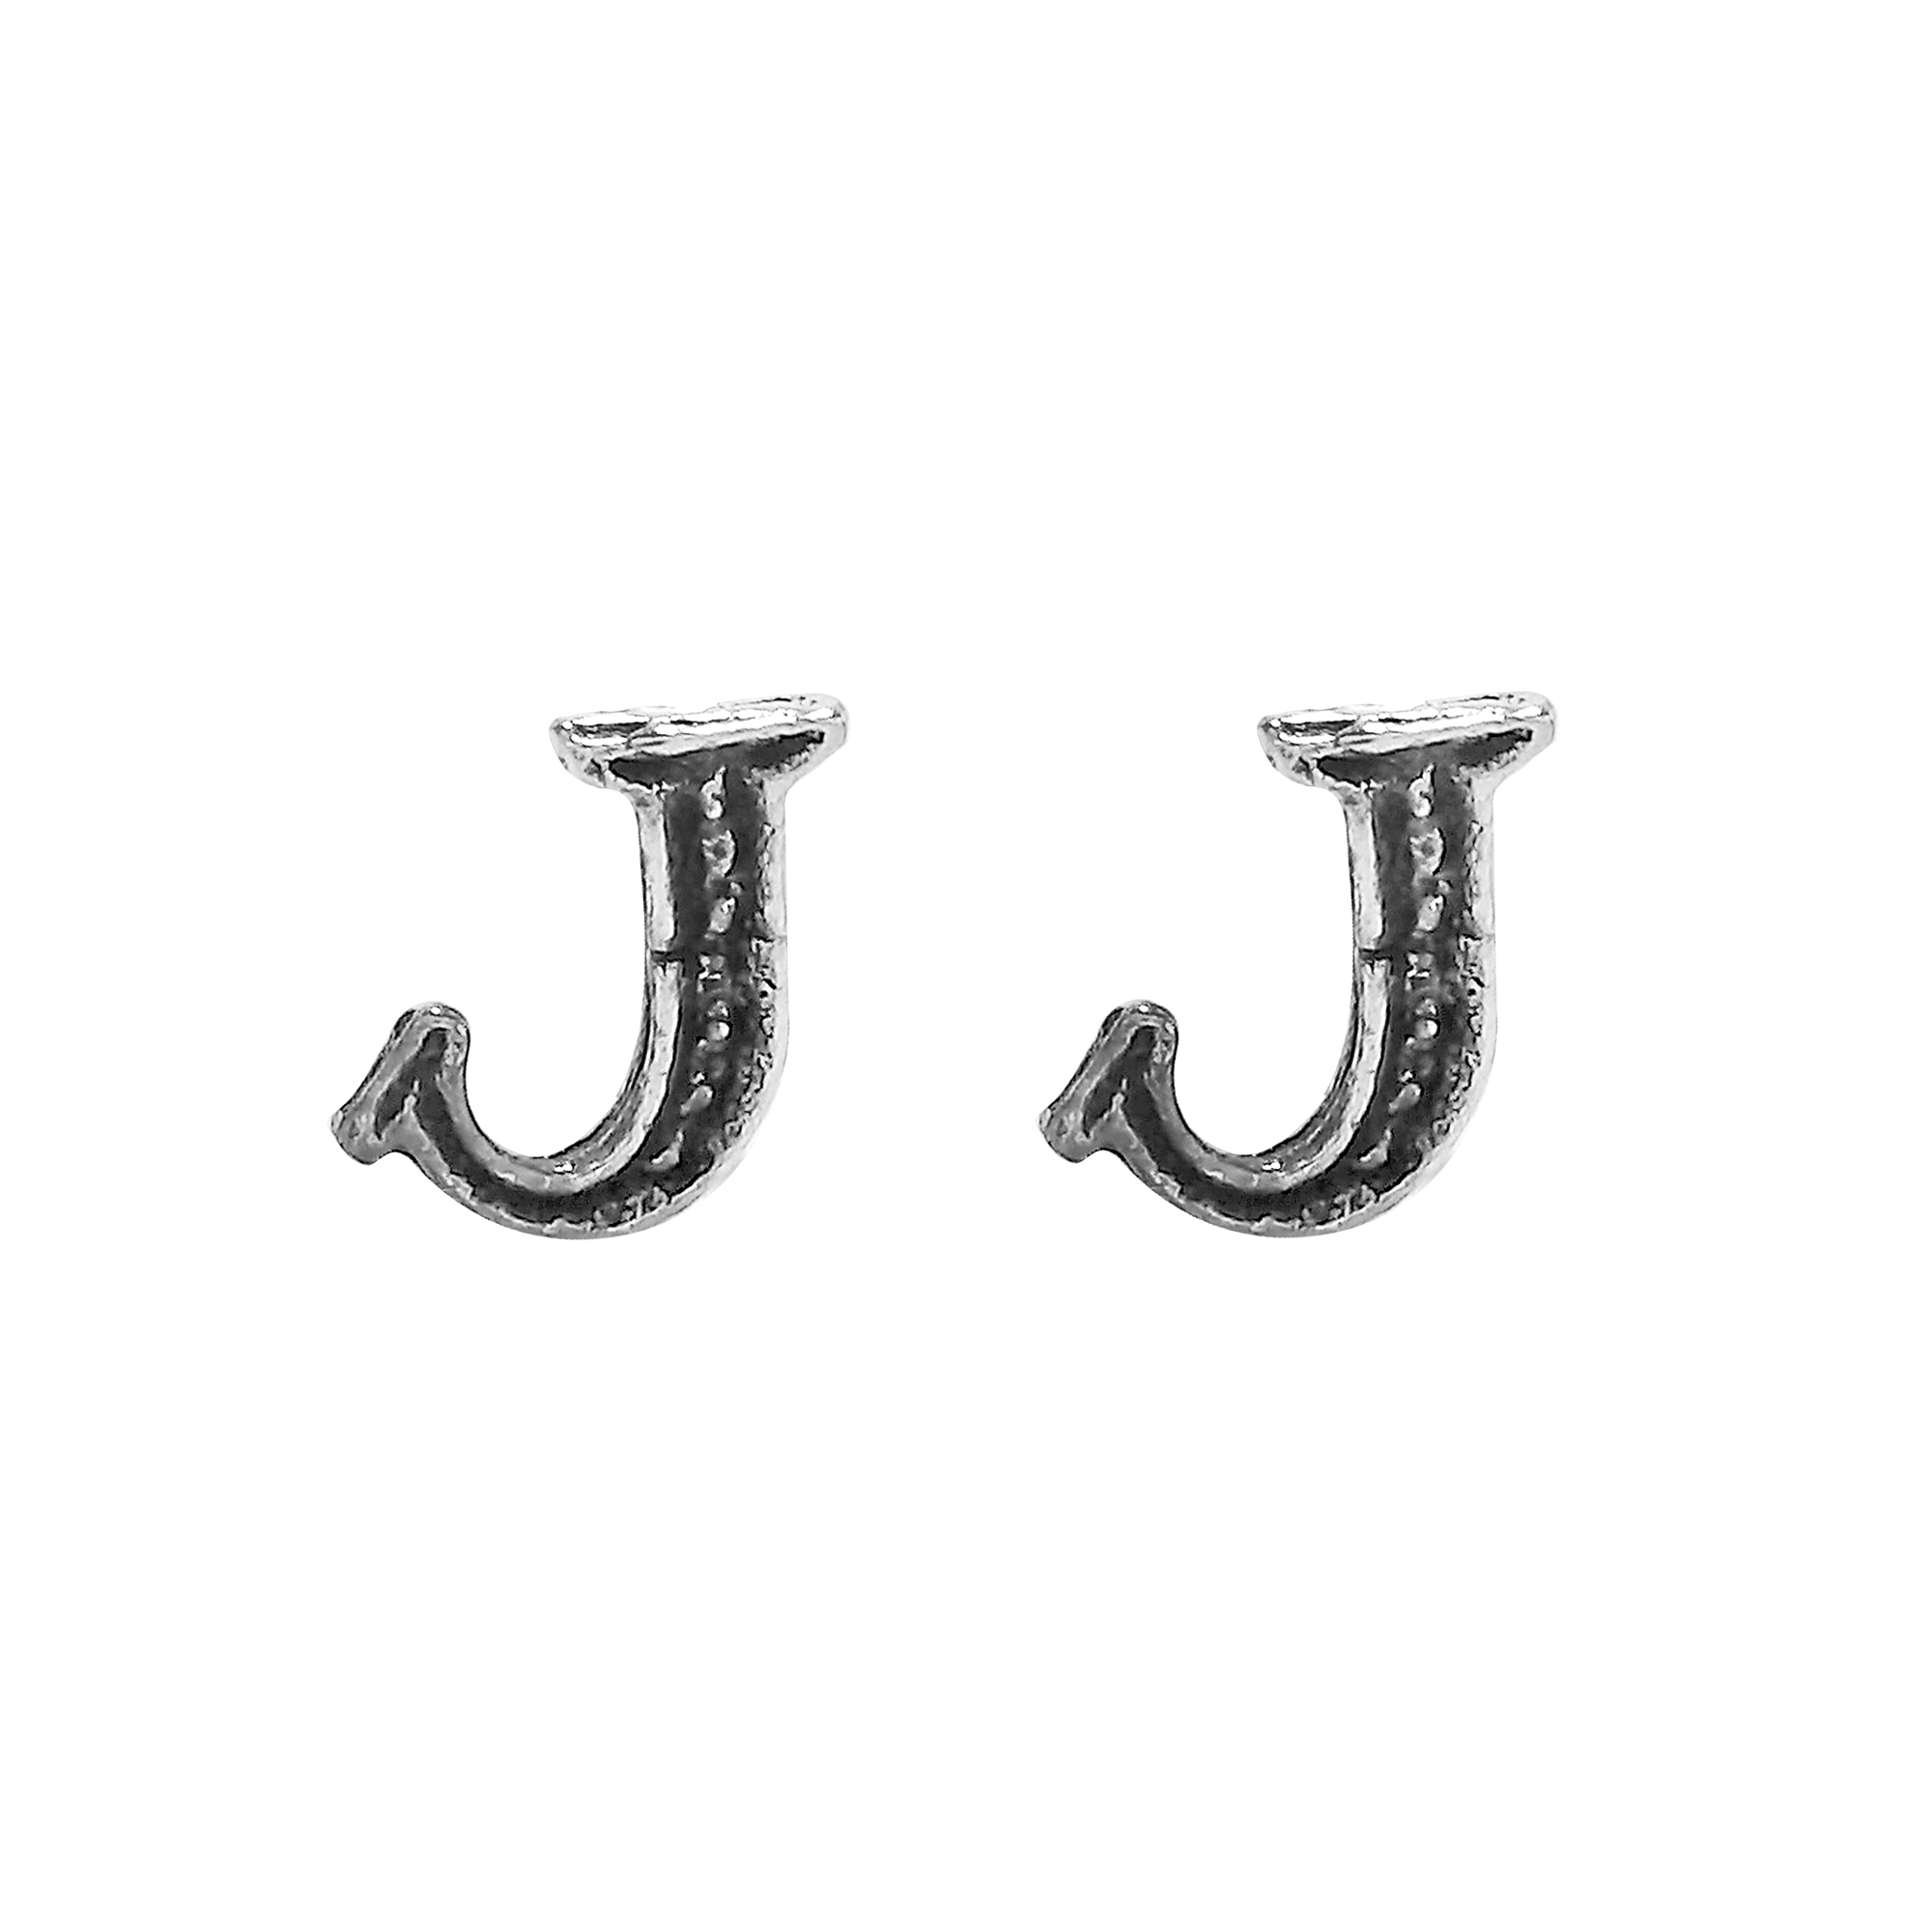 p sterling these alphabet silver available the letter yet this feature stylish earrings a are simple handmade aeravida pe cool pair stud of every plain details in products